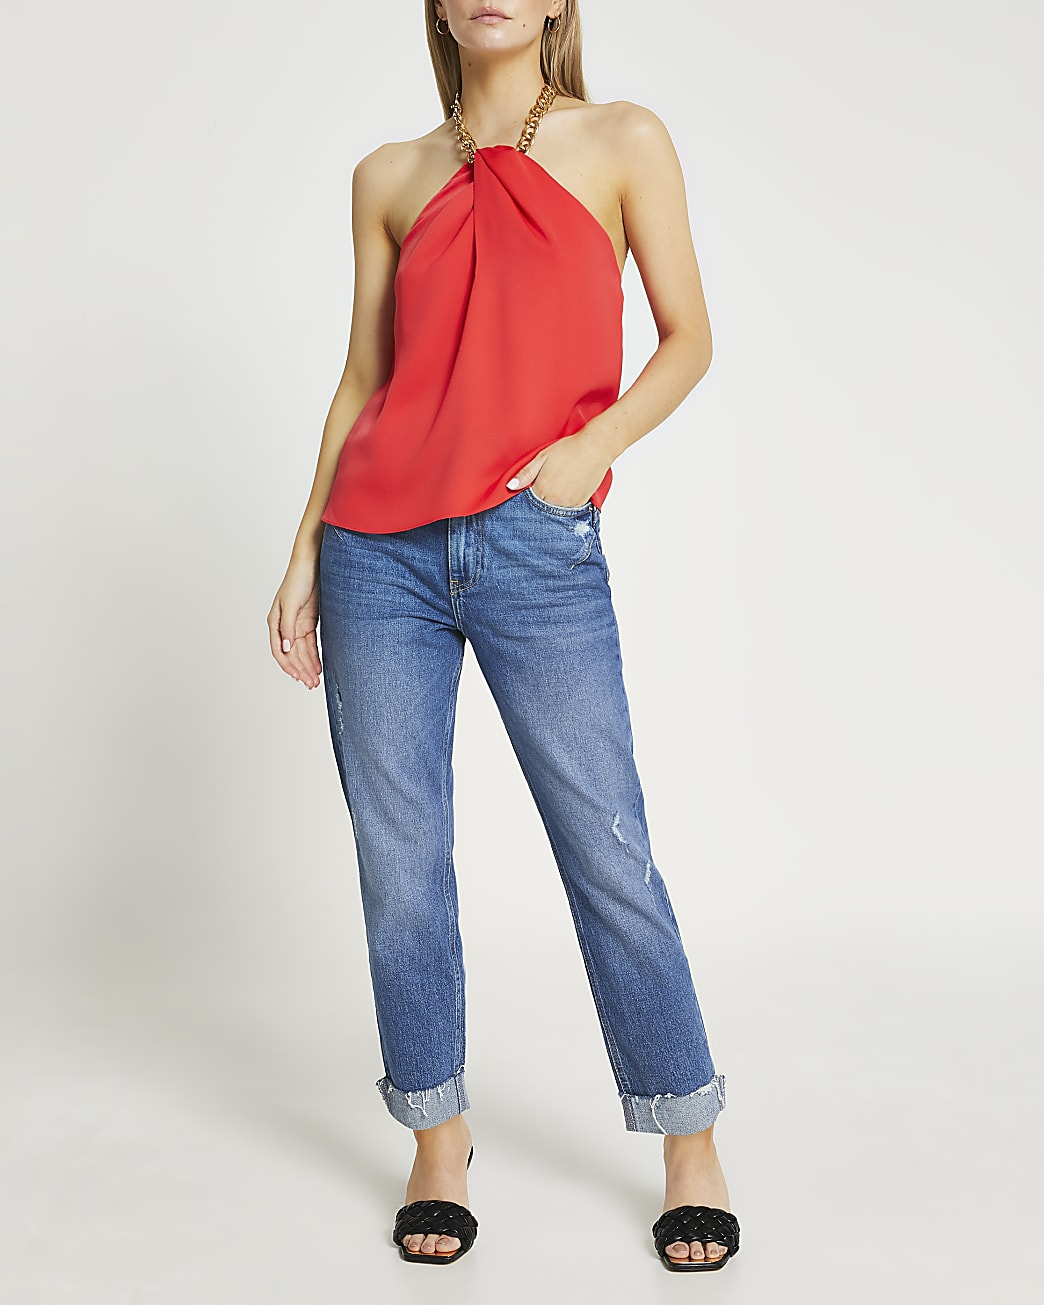 Petite red gold chain halter neck top